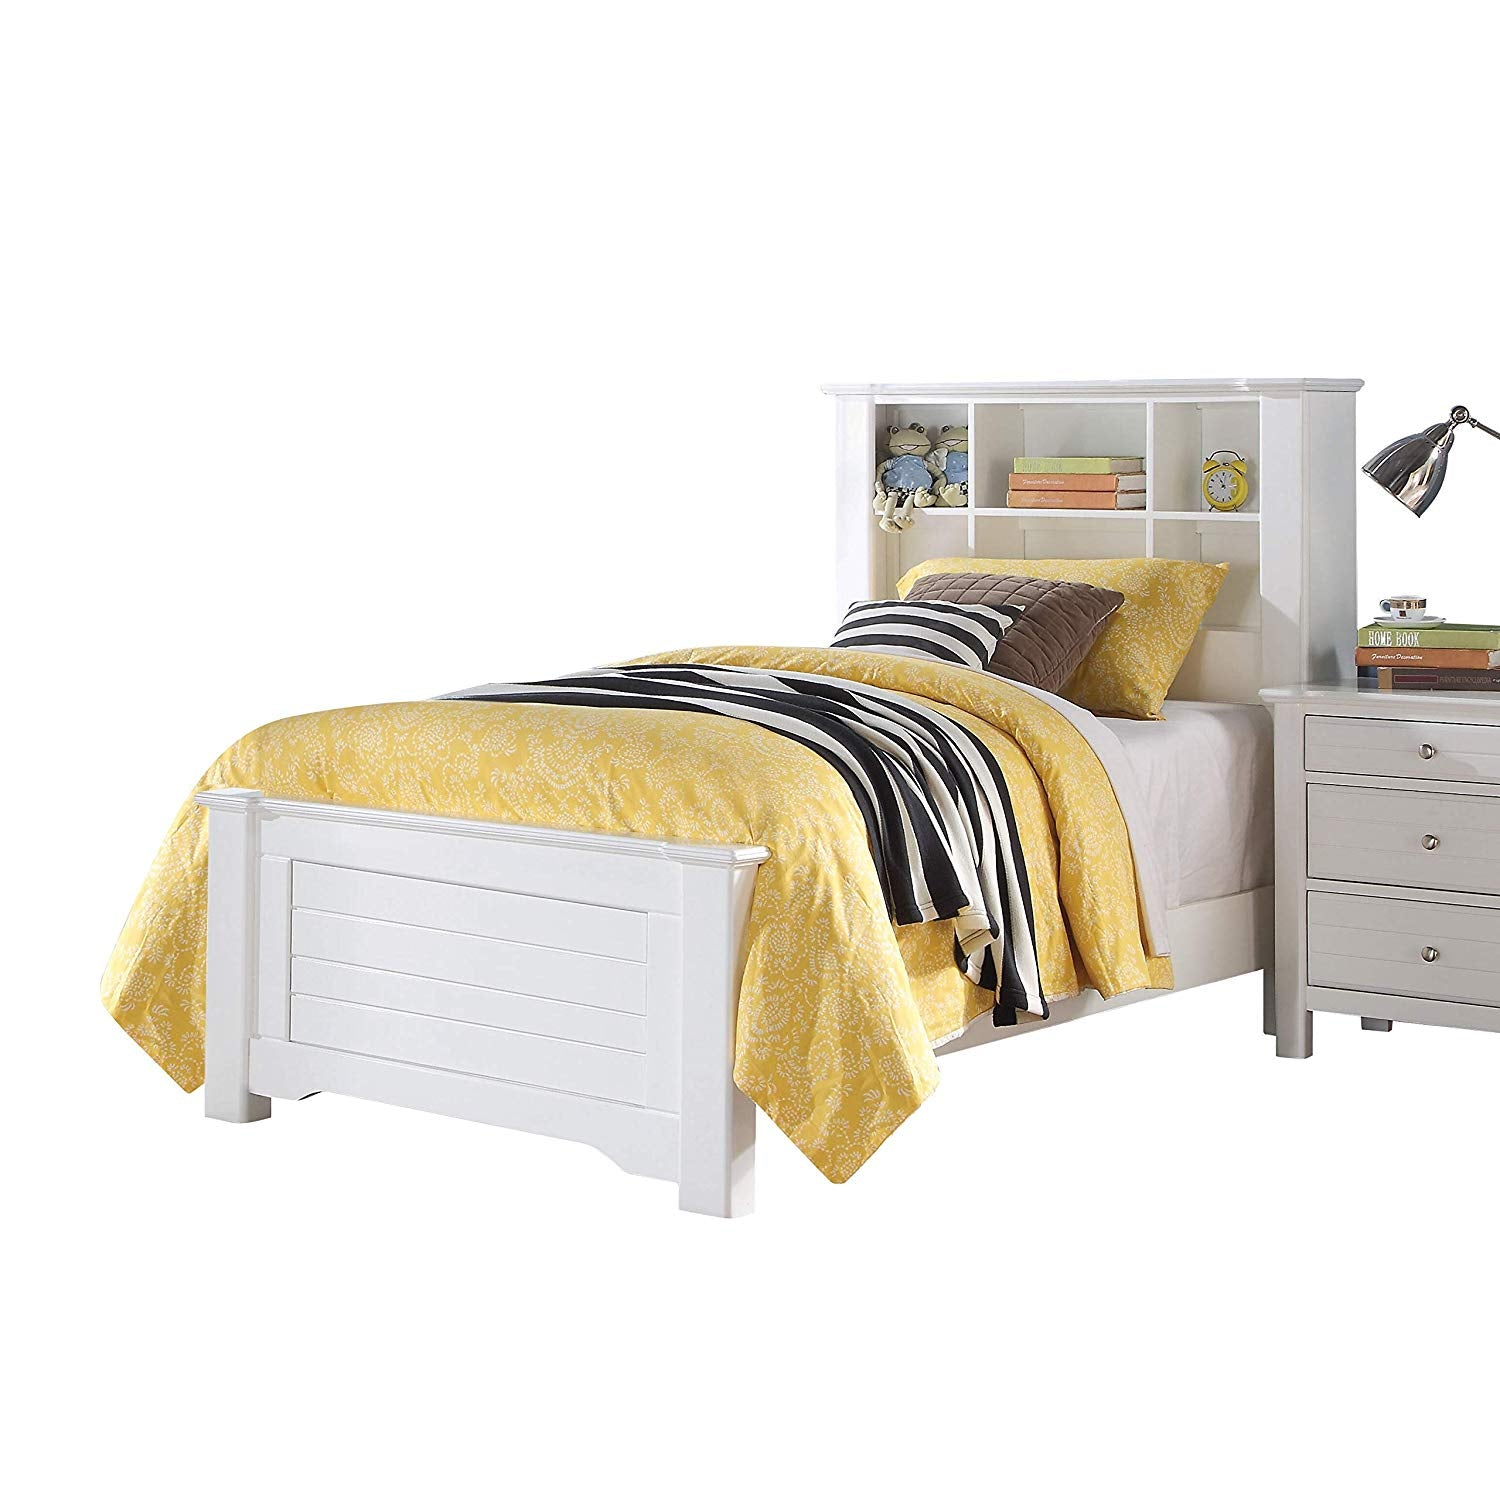 Acme 30415f Mallowsea White Bookcase Headboard Full Storage Bed